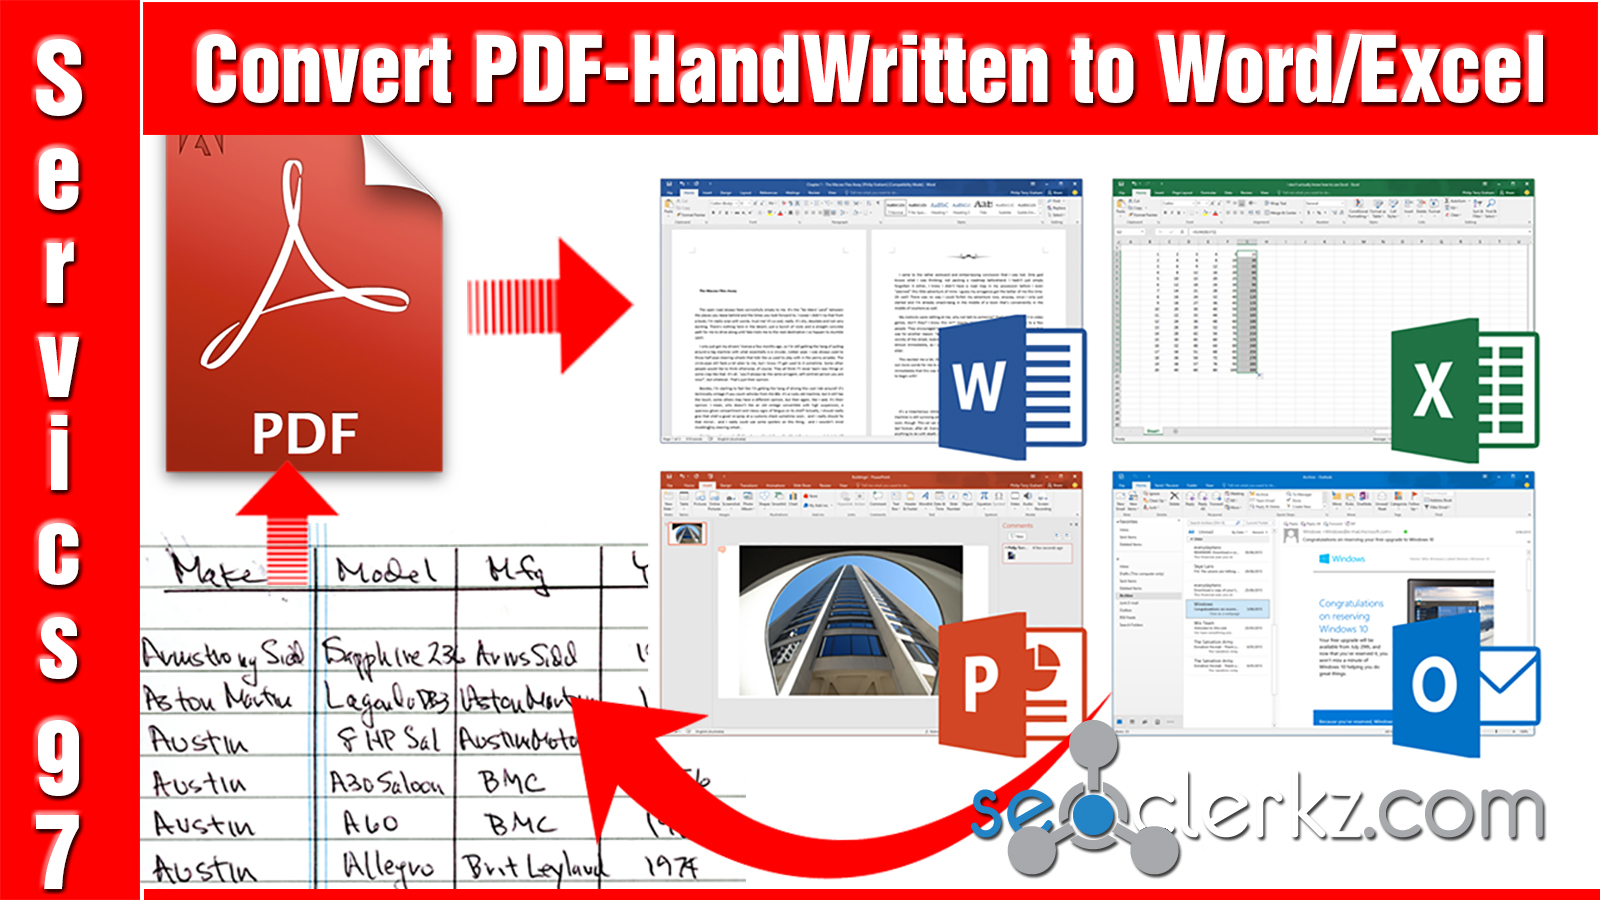 Convert PDF to Word or Excel for $5